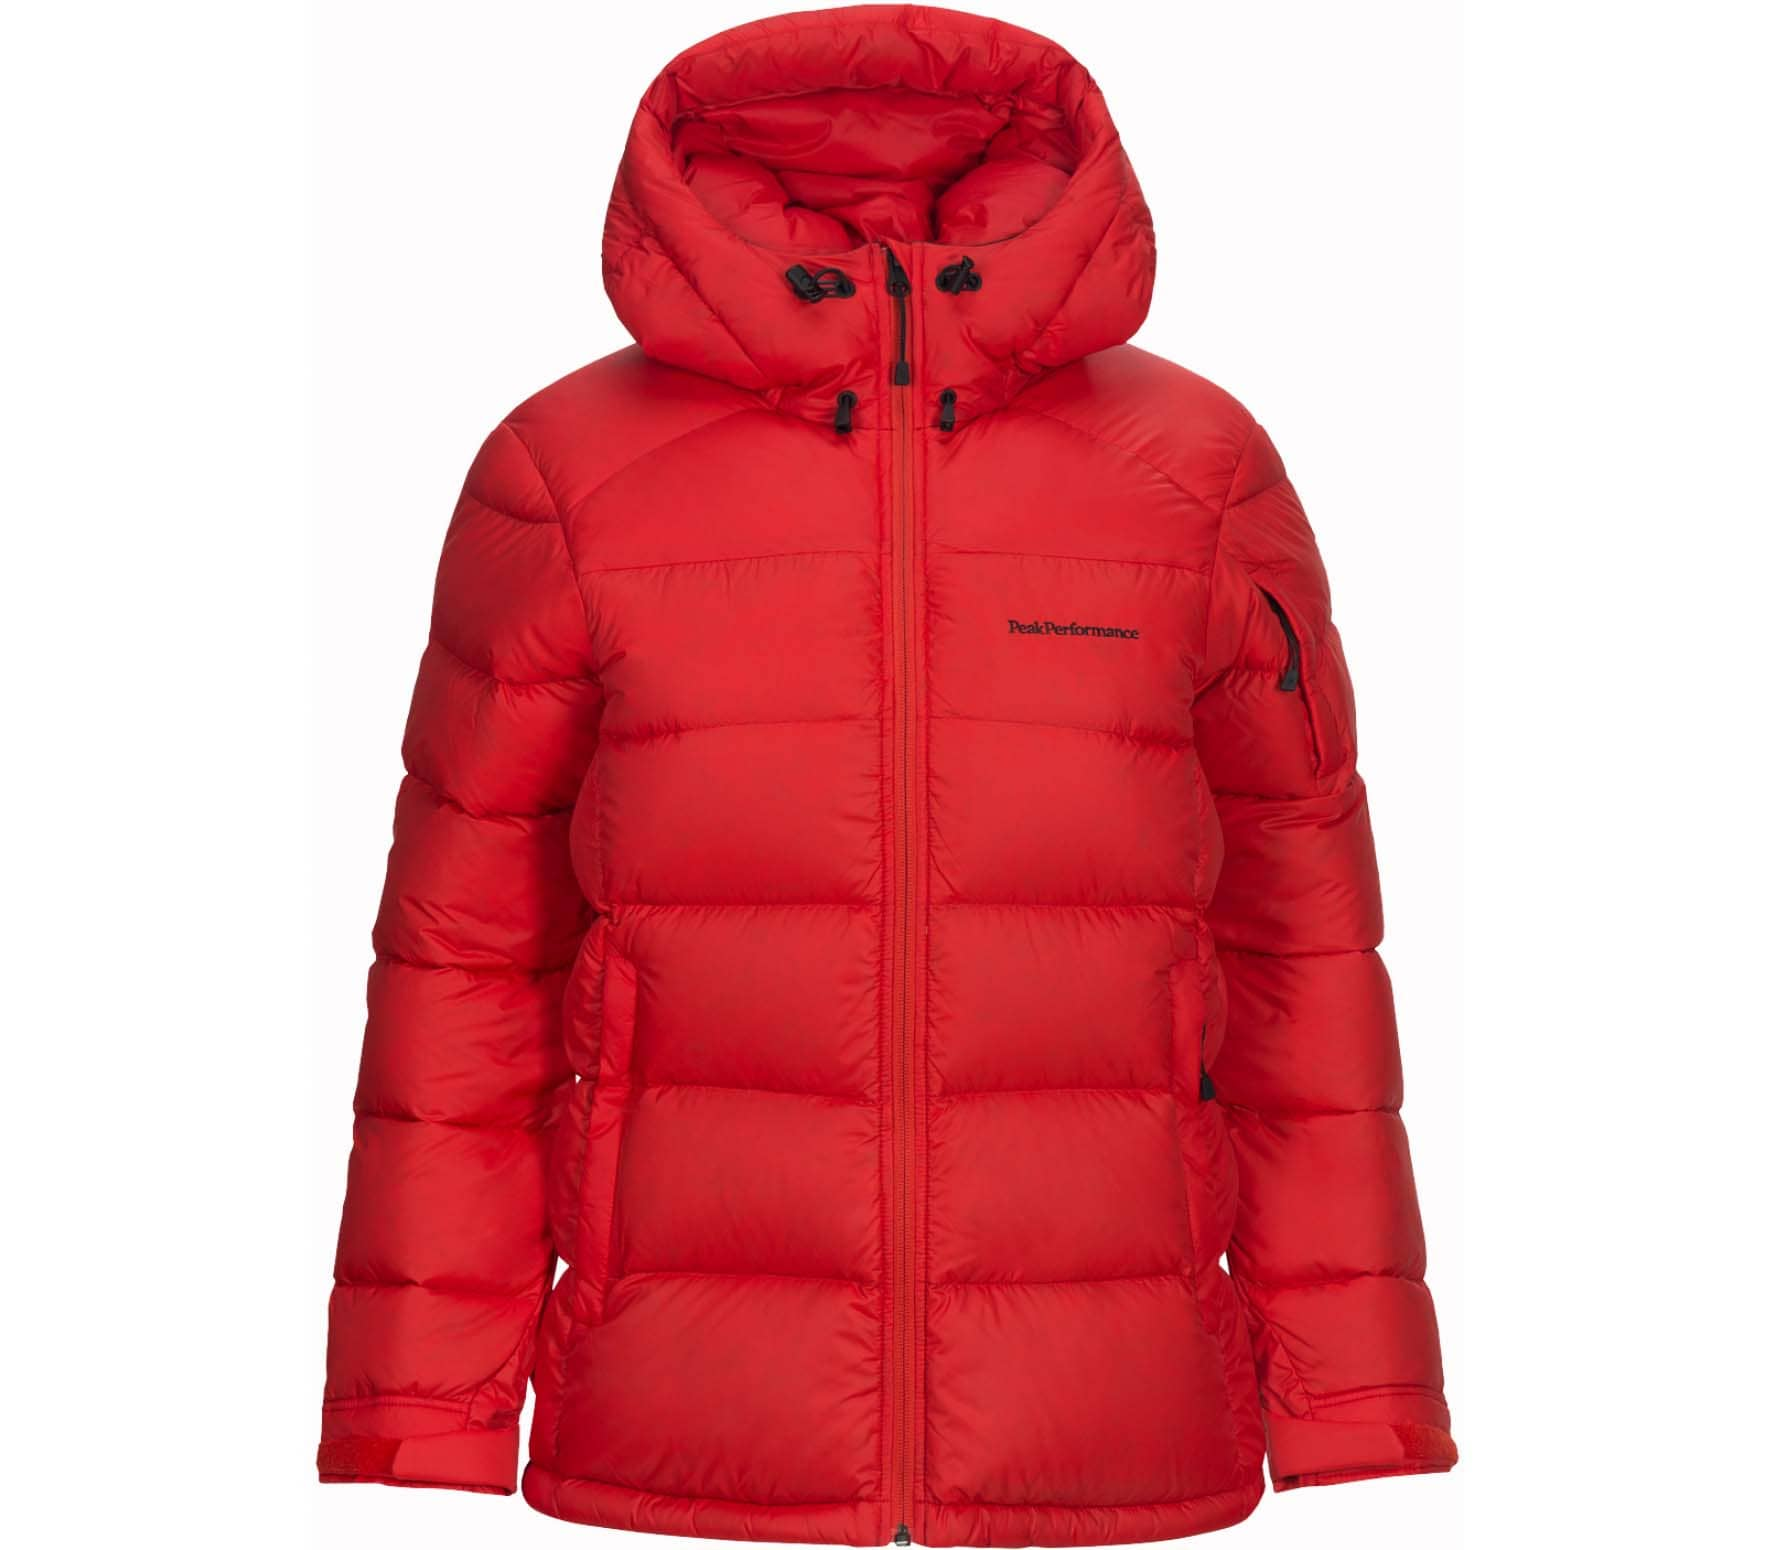 Peak Performance - Frost Pertex Damen Daunenjacke (rot)